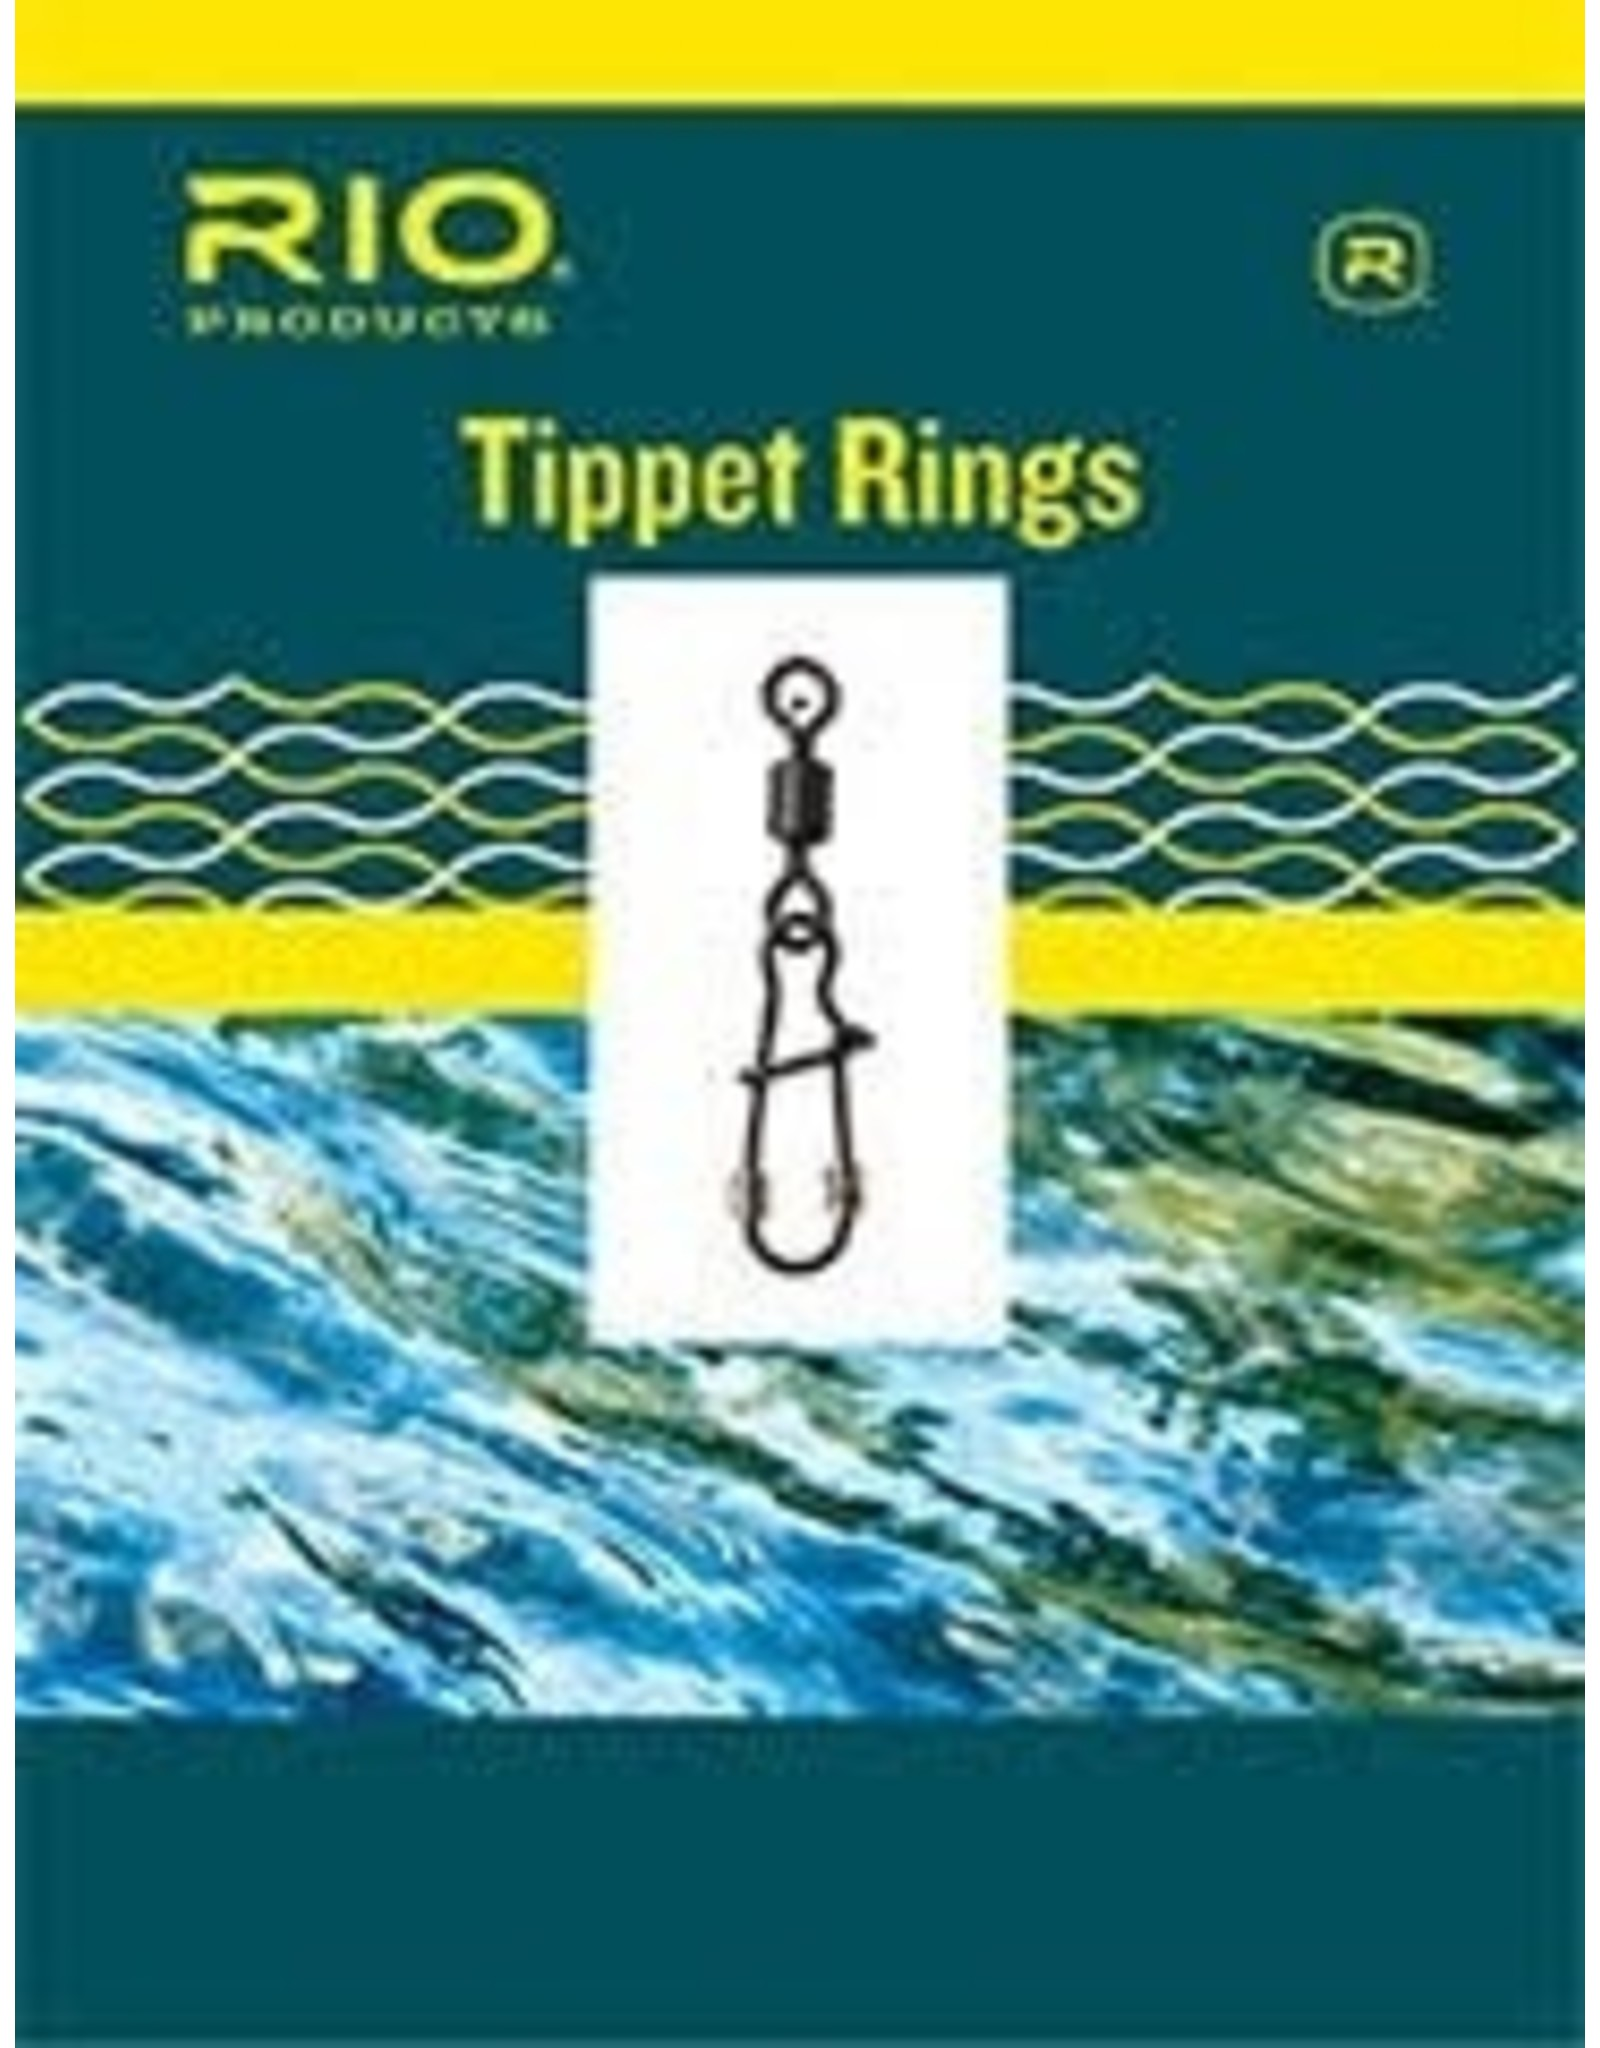 Rio Tippet Rings 3mm.....10 per pack